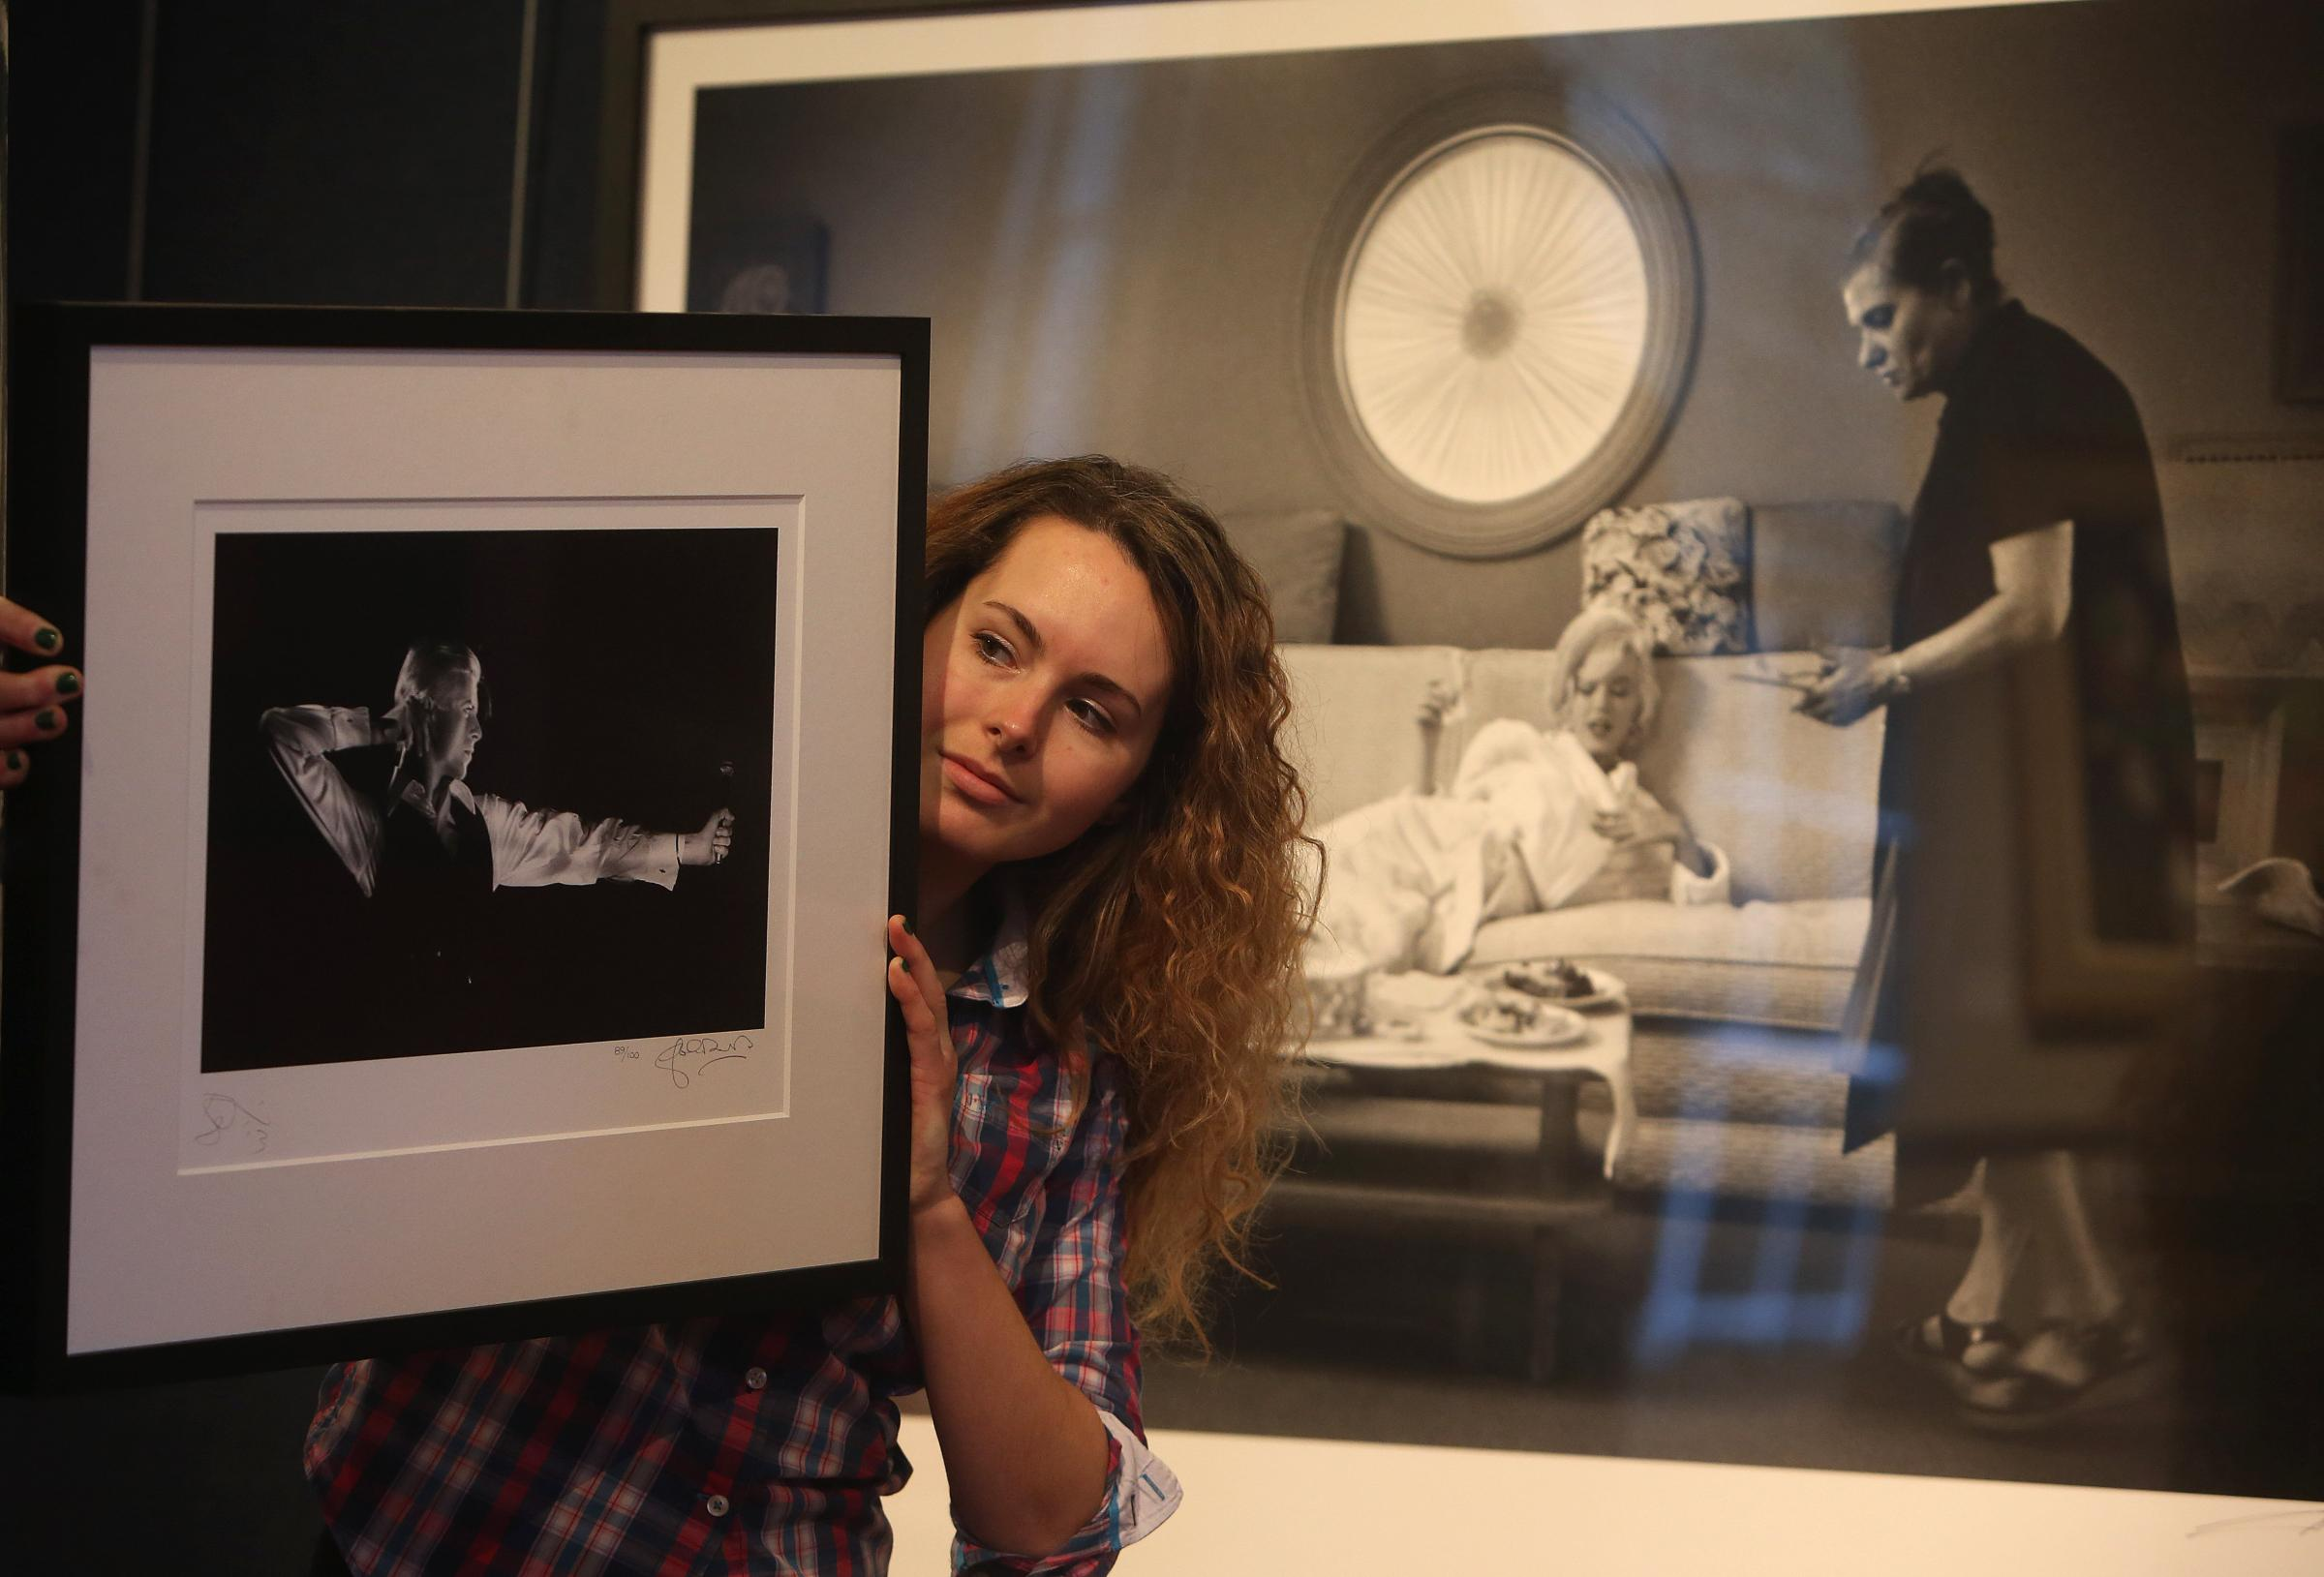 Photographs of Bowie and Munroe go under the hammer in Edinburgh